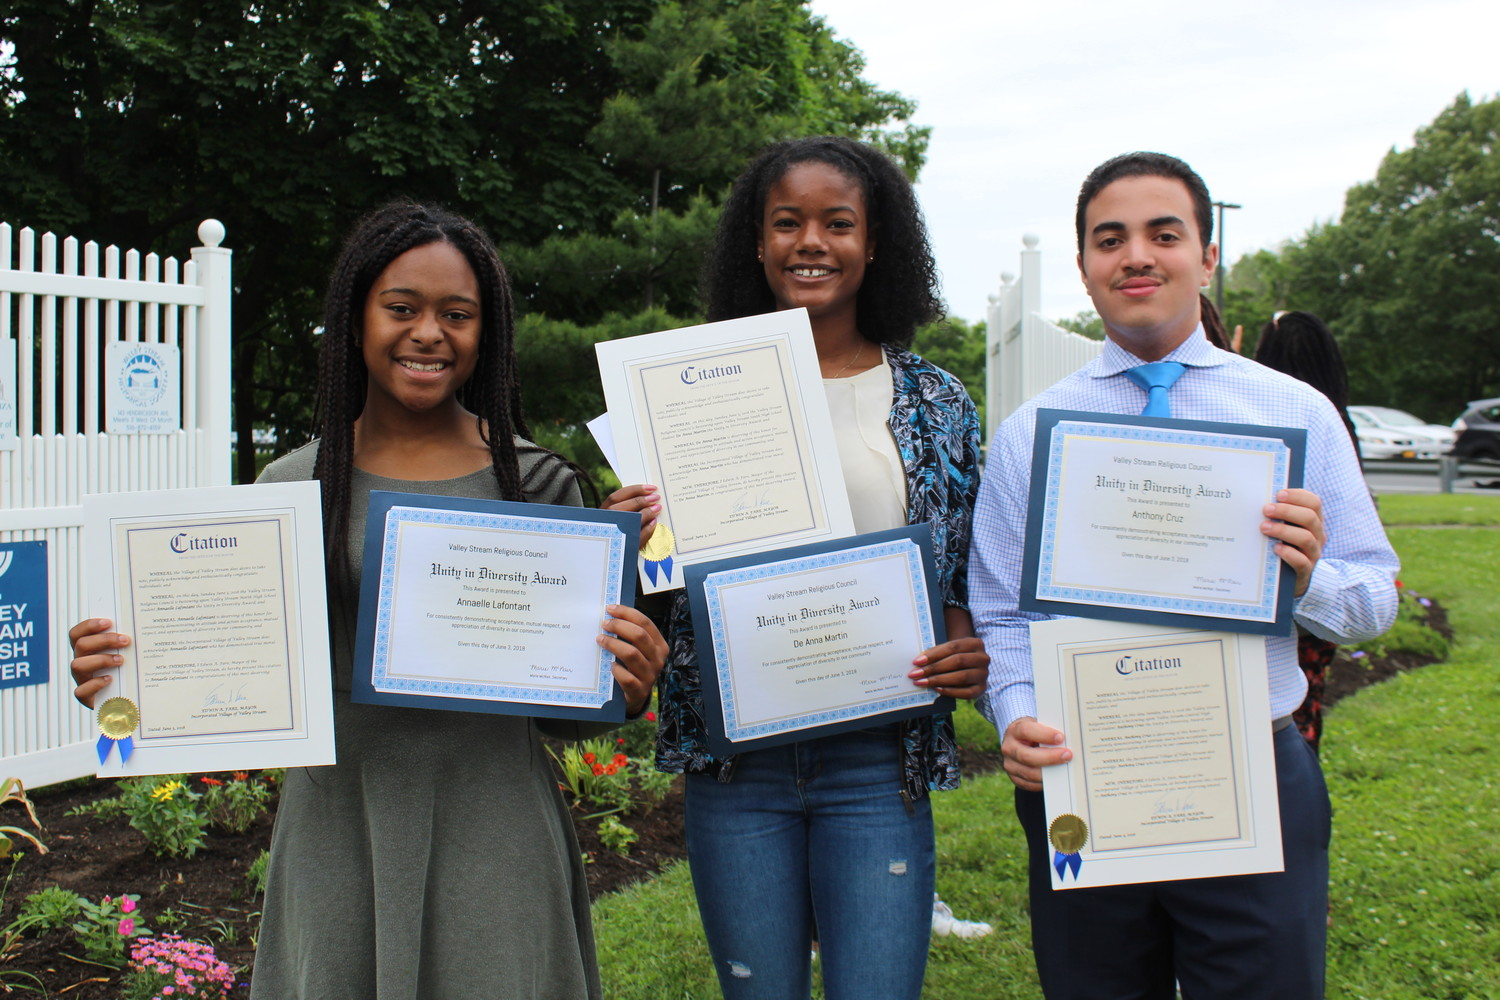 Melissa Koenig/Herald